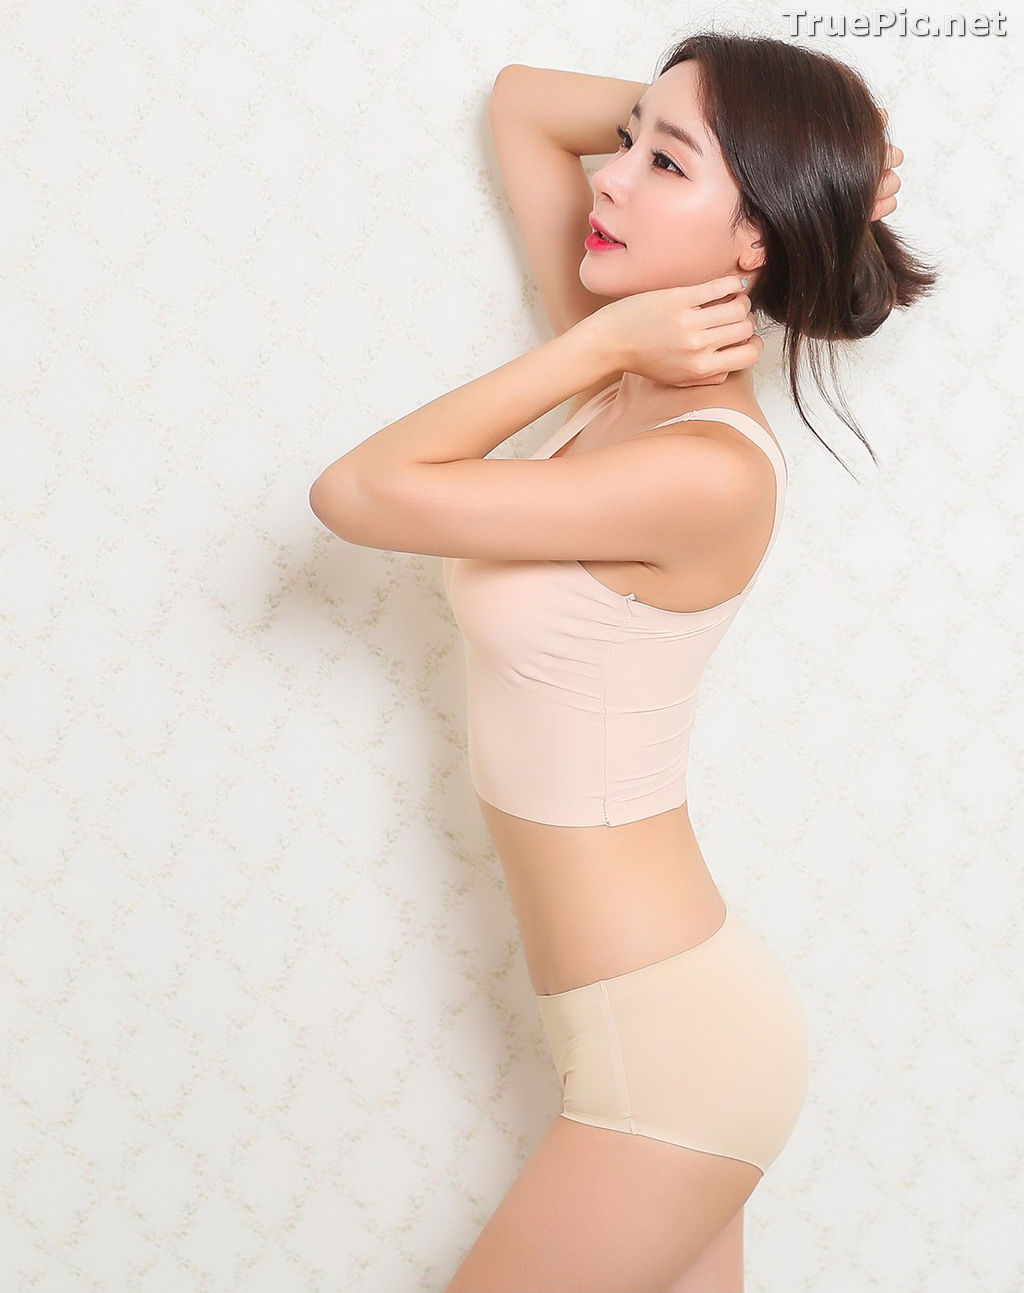 Image Hyun Kyung - Korean Fashion Model - Nude Color Undies - TruePic.net - Picture-1